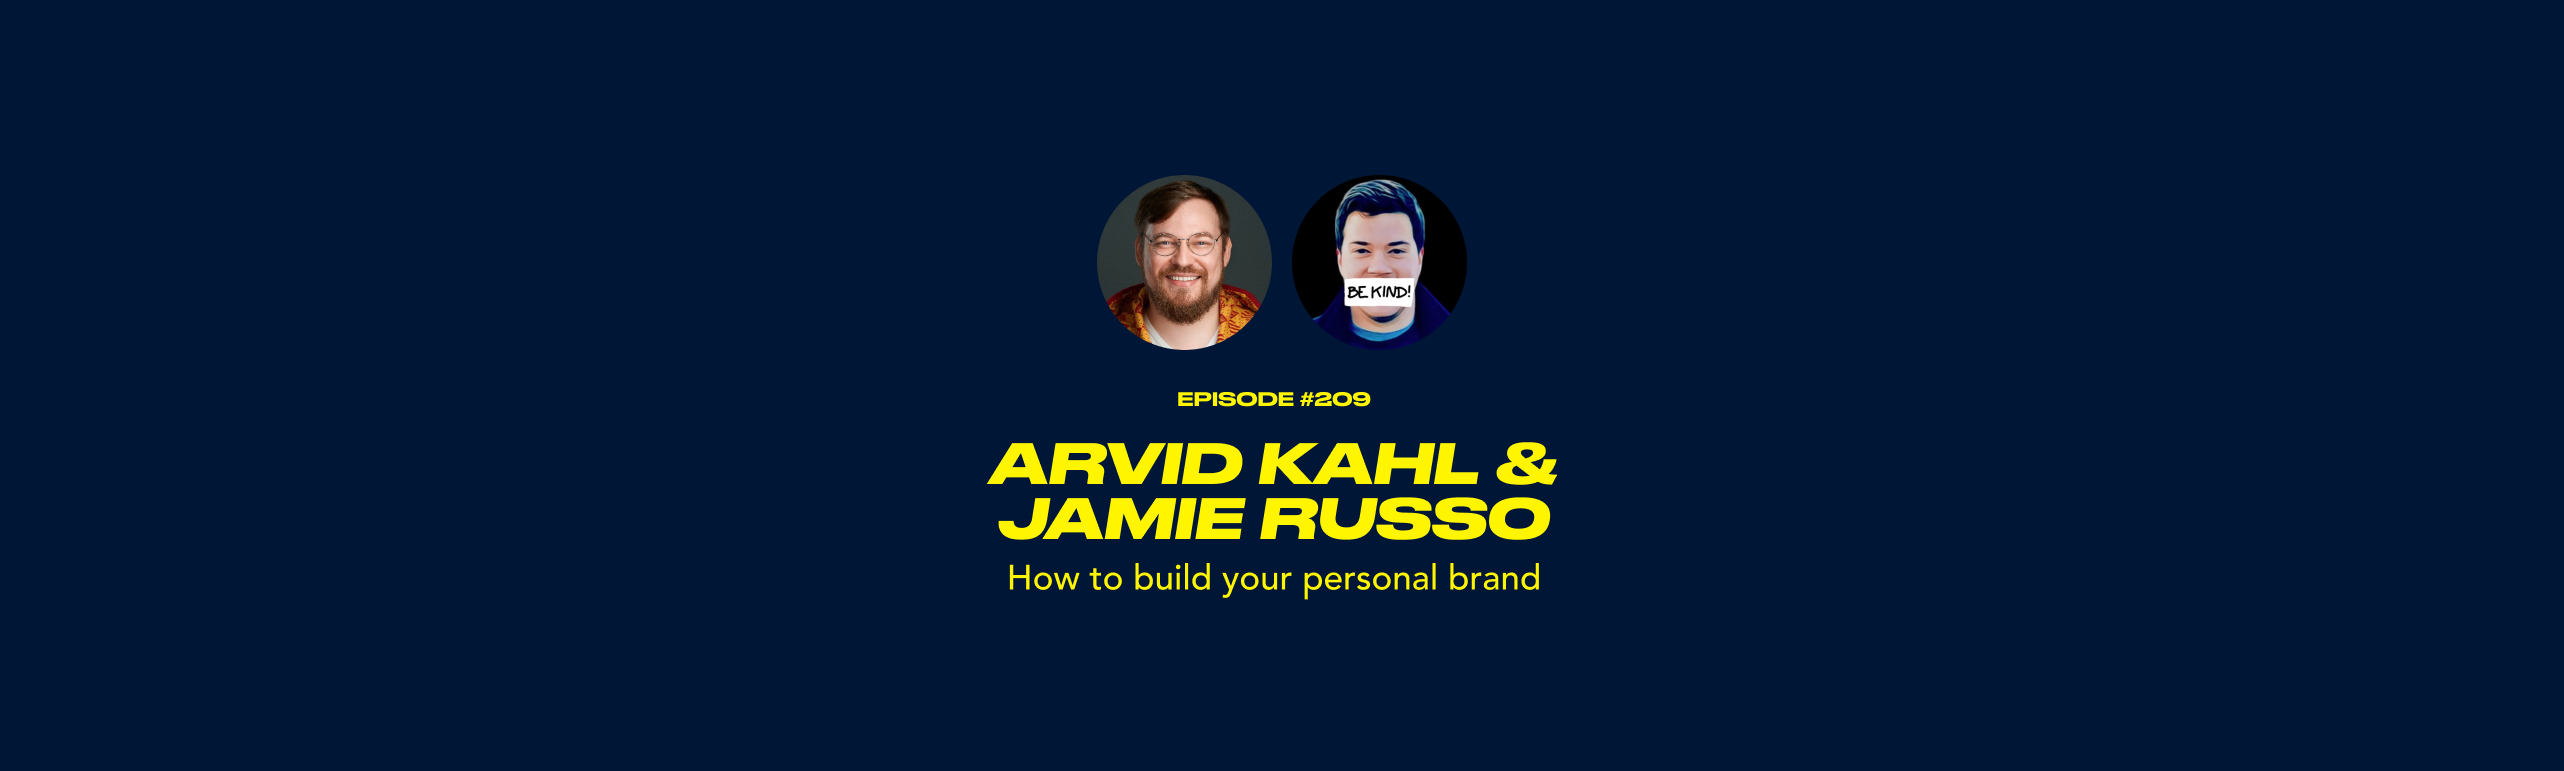 Arvid Kahl & Jamie Russo - How to build your personal brand